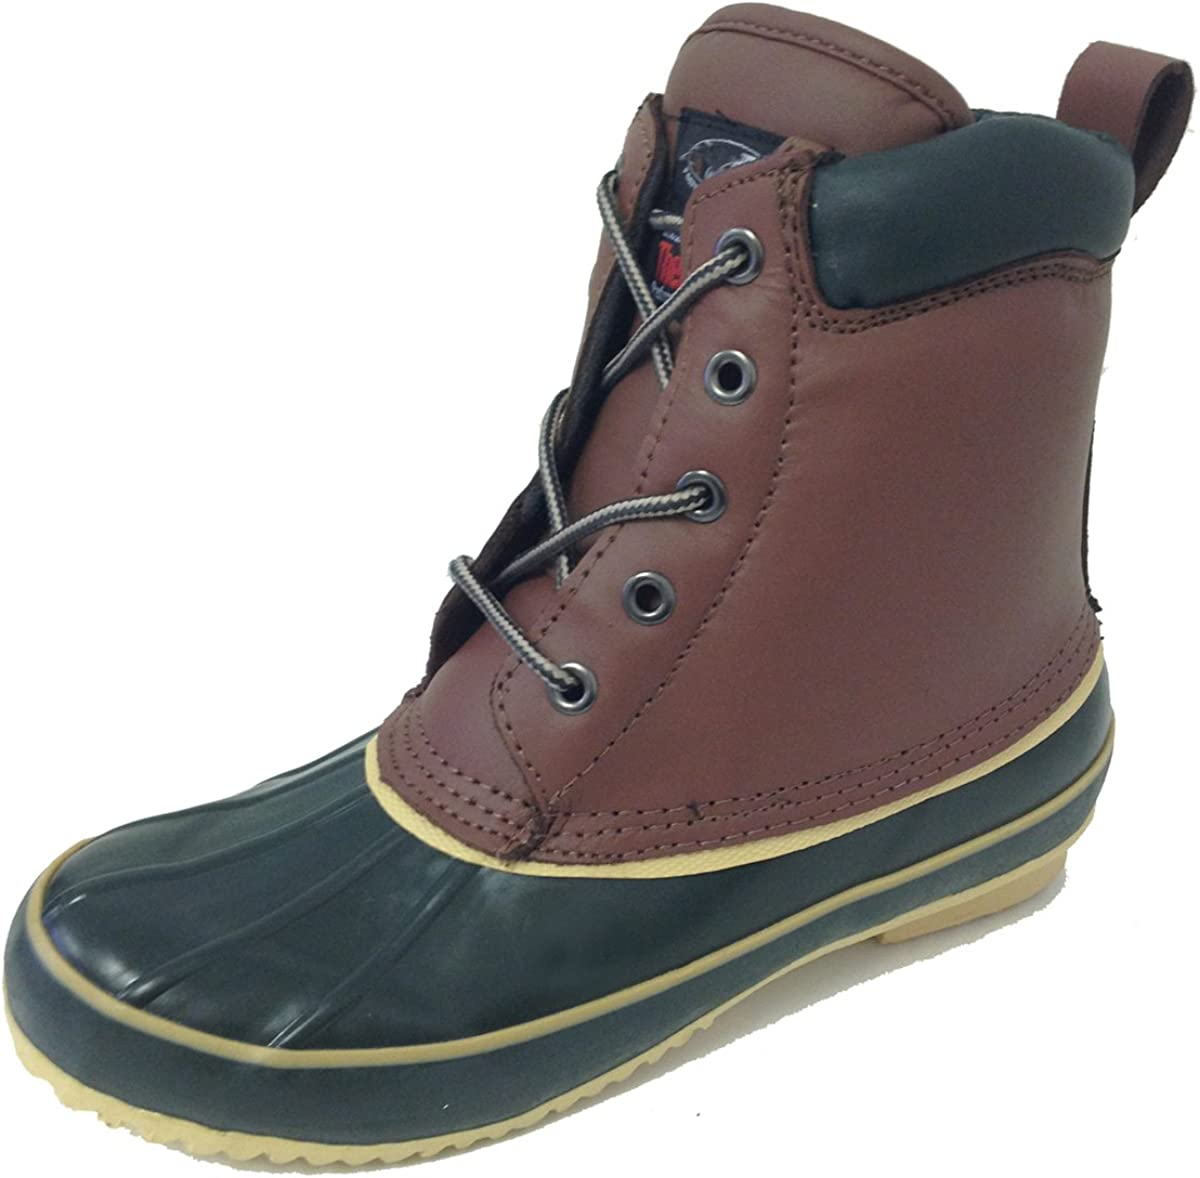 G-9021SC Women's Duck Boots wholesale Sales results No. 1 Leather Waterproof Insula Thermolite